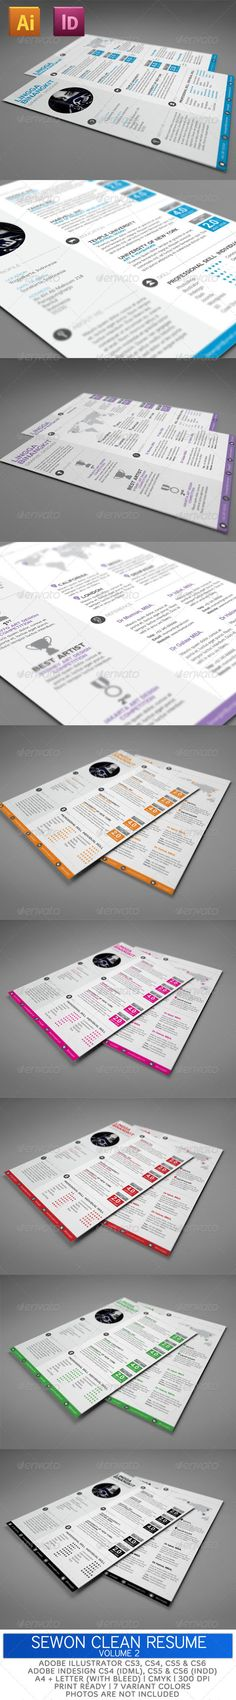 Really love the overall look and unique features of this resume style!   Creative resume design, resume style, cv, curriculum vitae  Sewon Clean Resume Template Volume 2 - GraphicRiver Item for Sale